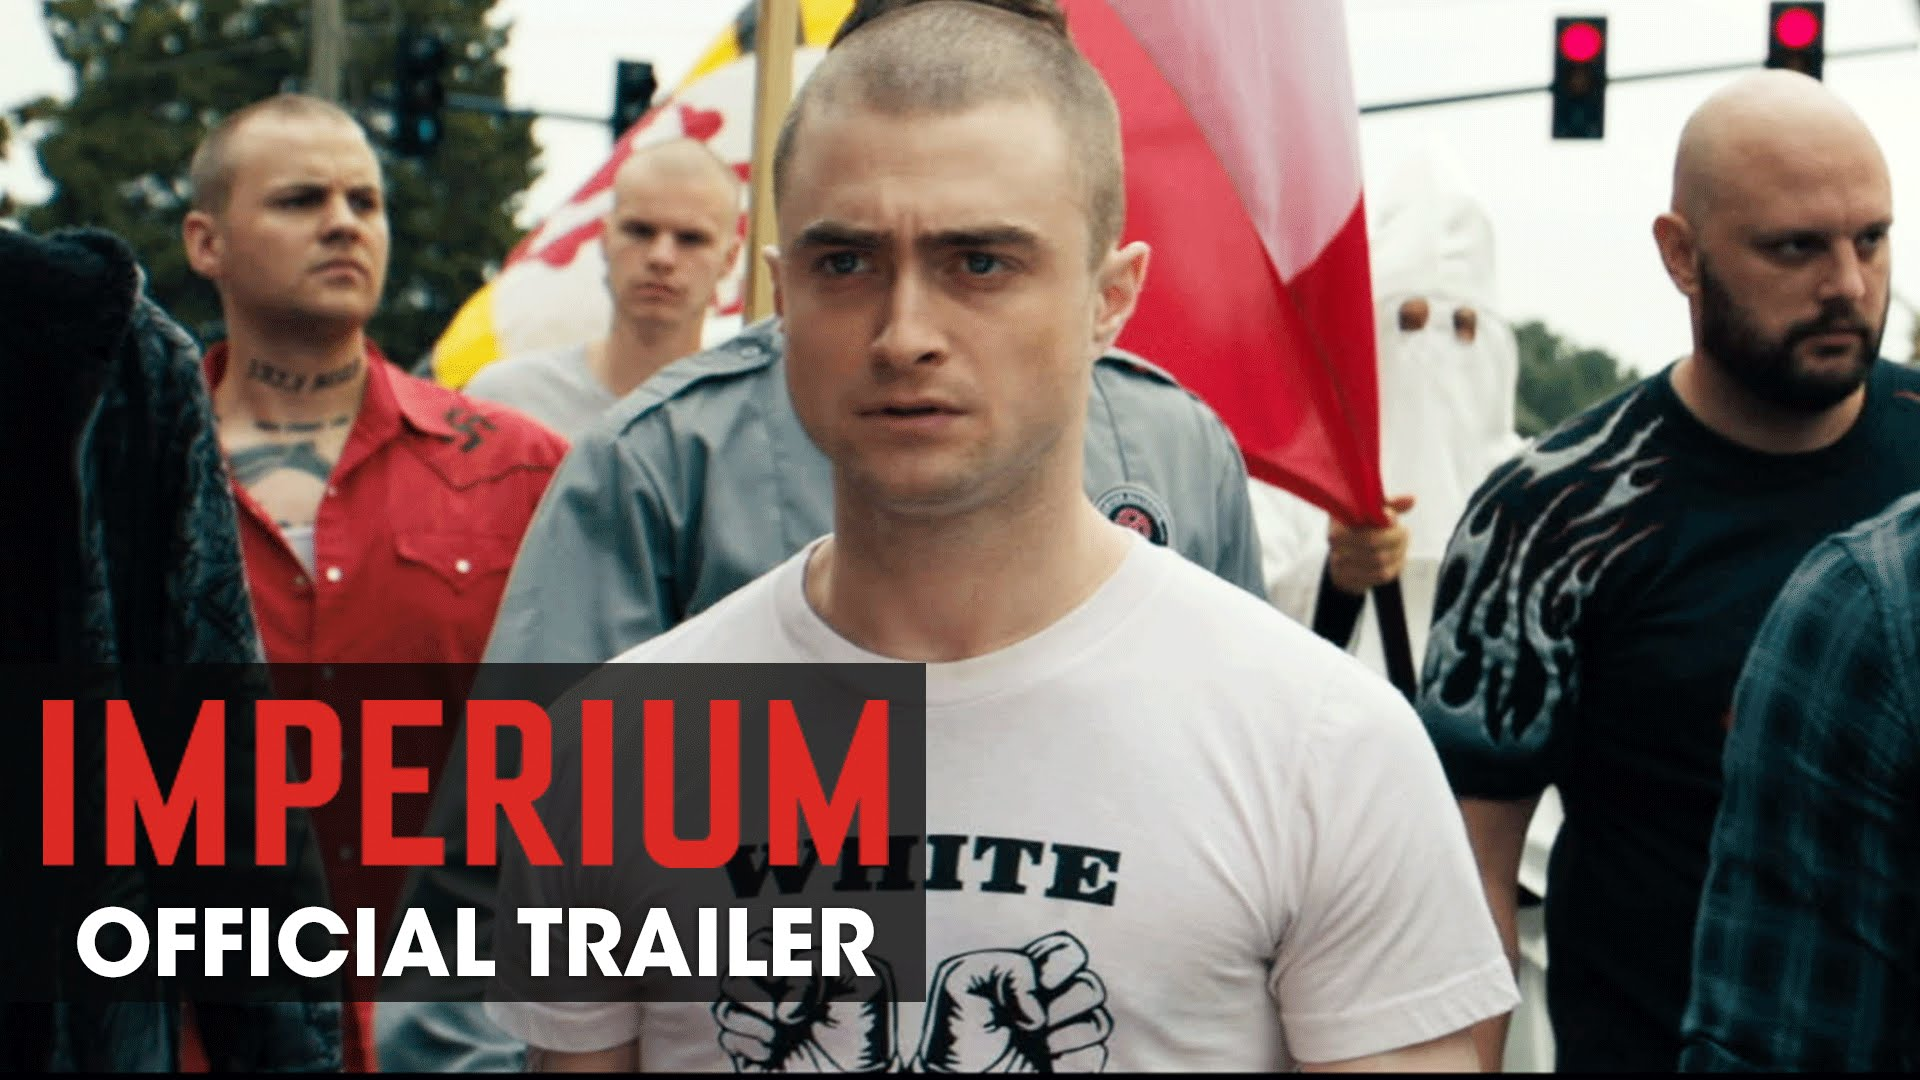 Imperium (2016 Movie – Daniel Radcliffe, Toni Collette) – Official Trailer